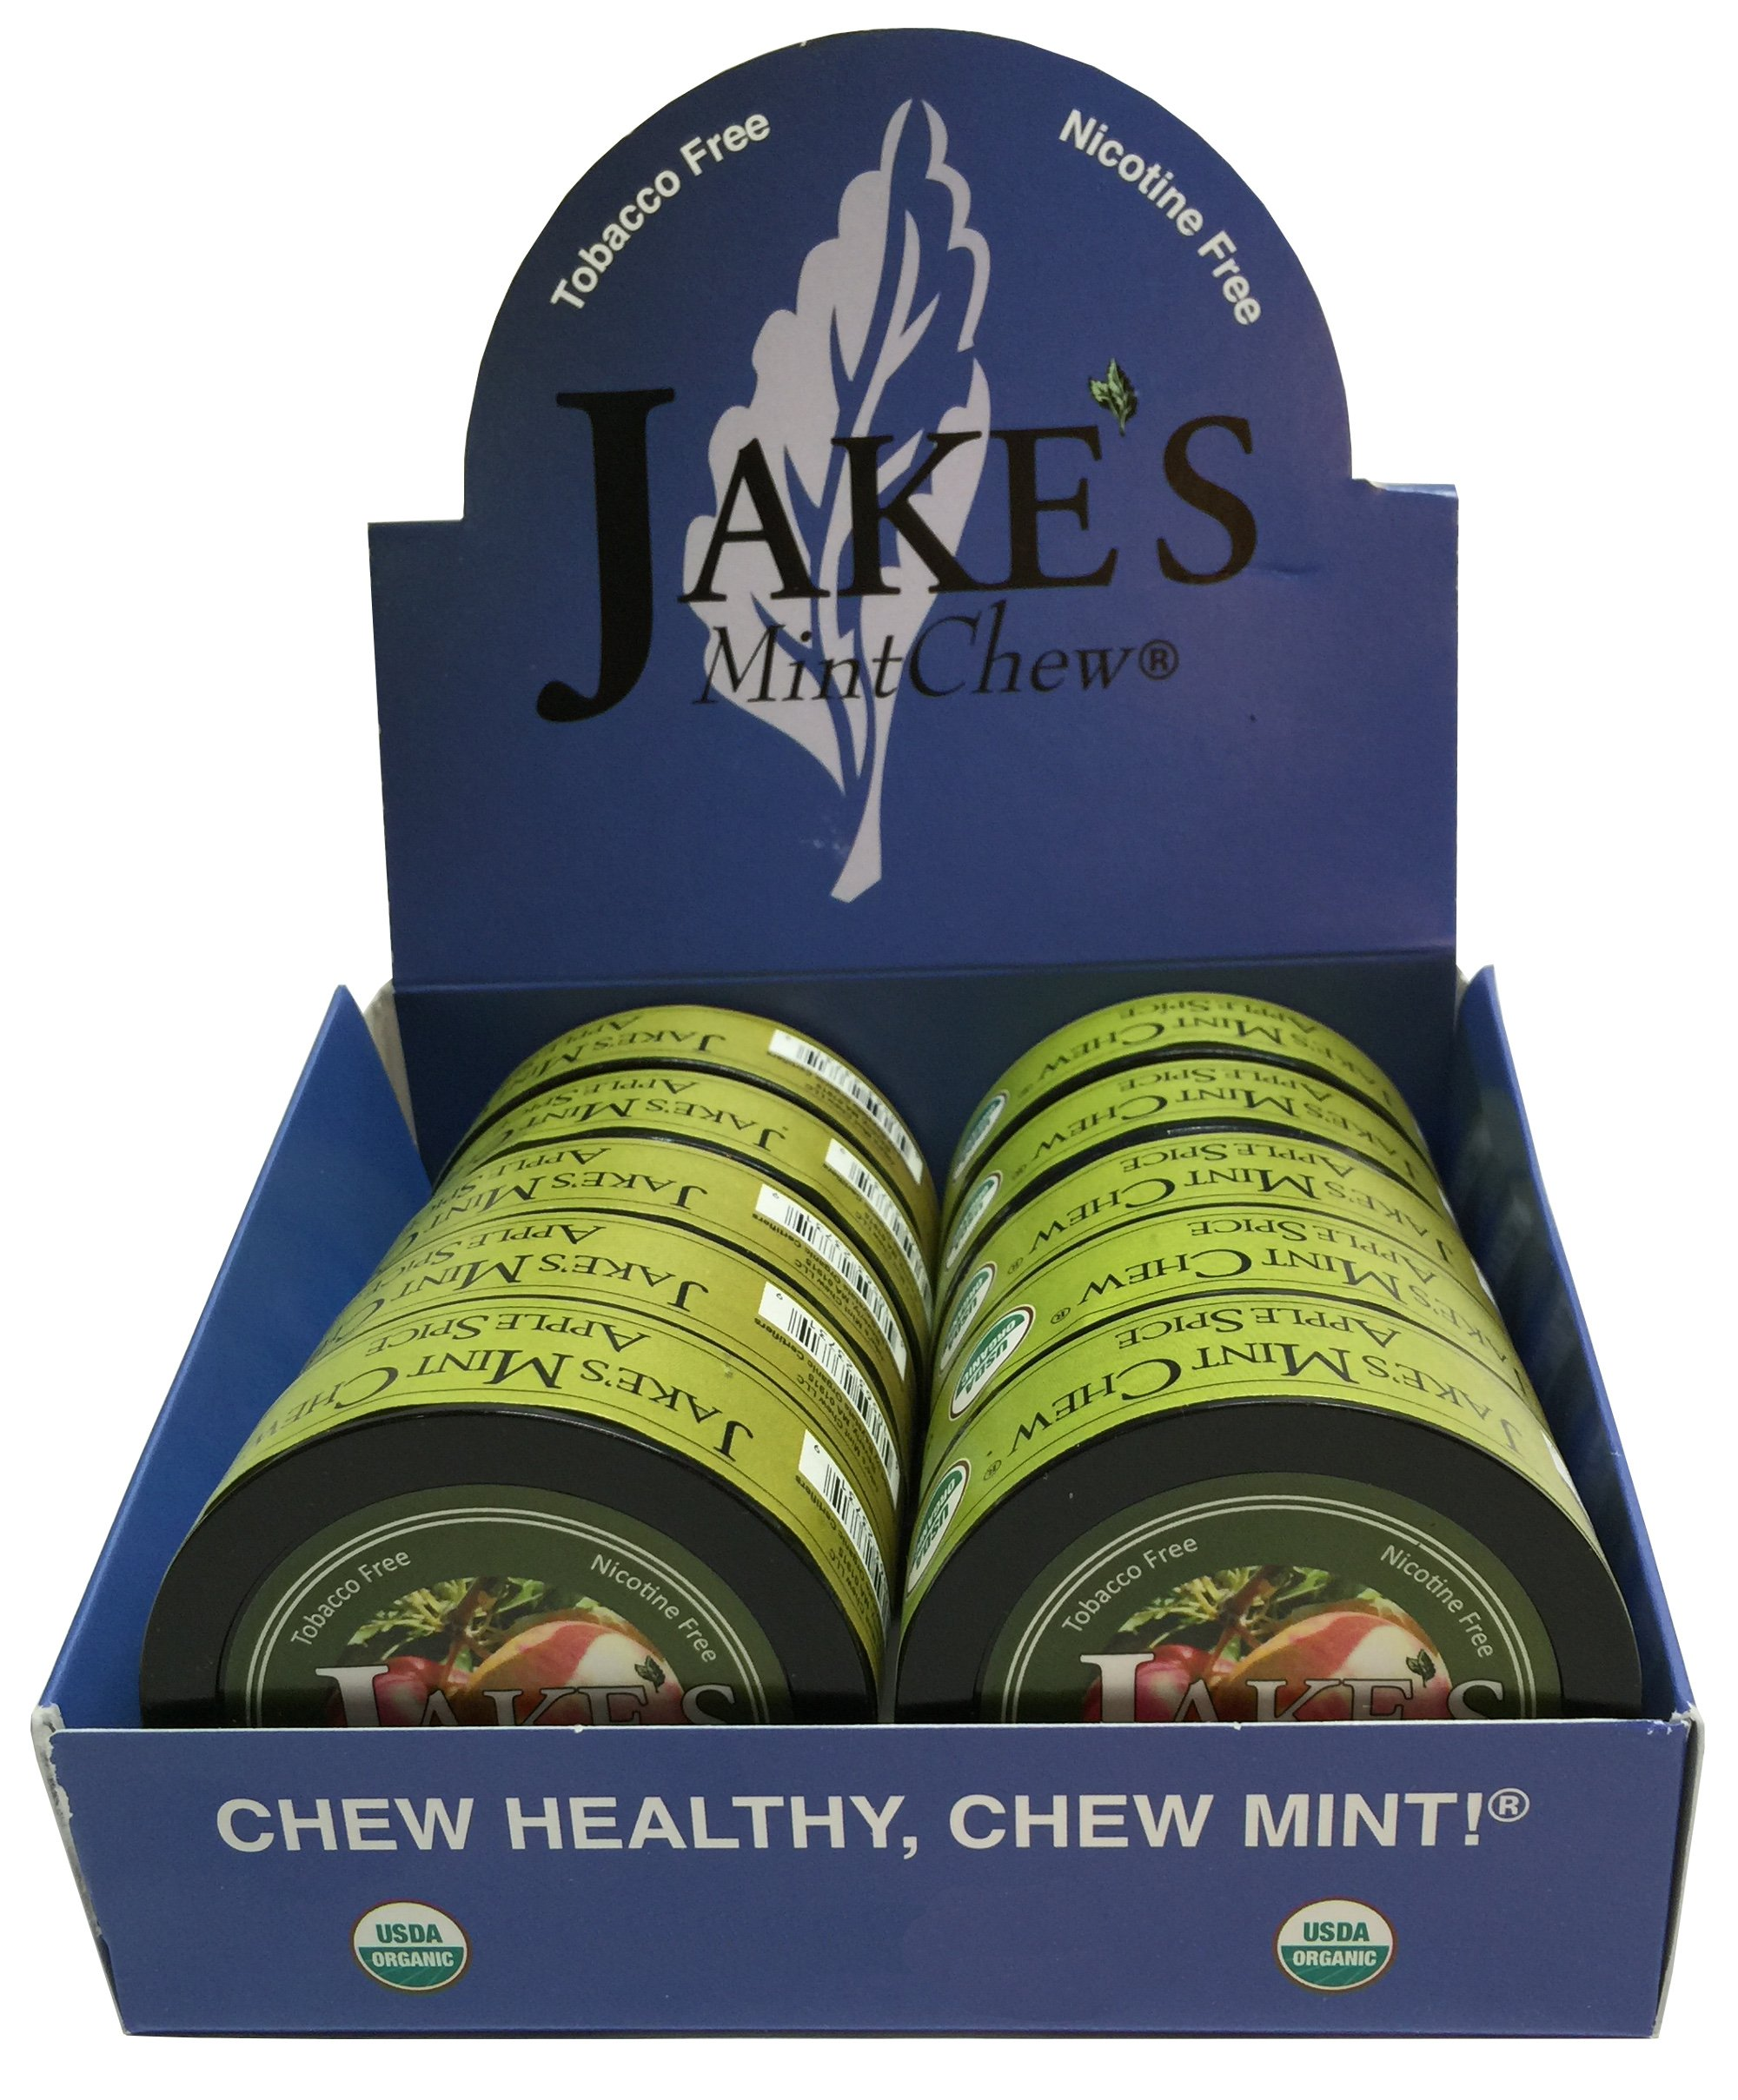 Jake's Mint Chew - Apple Spice - Tobacco & Nicotine Free! (10 cans)